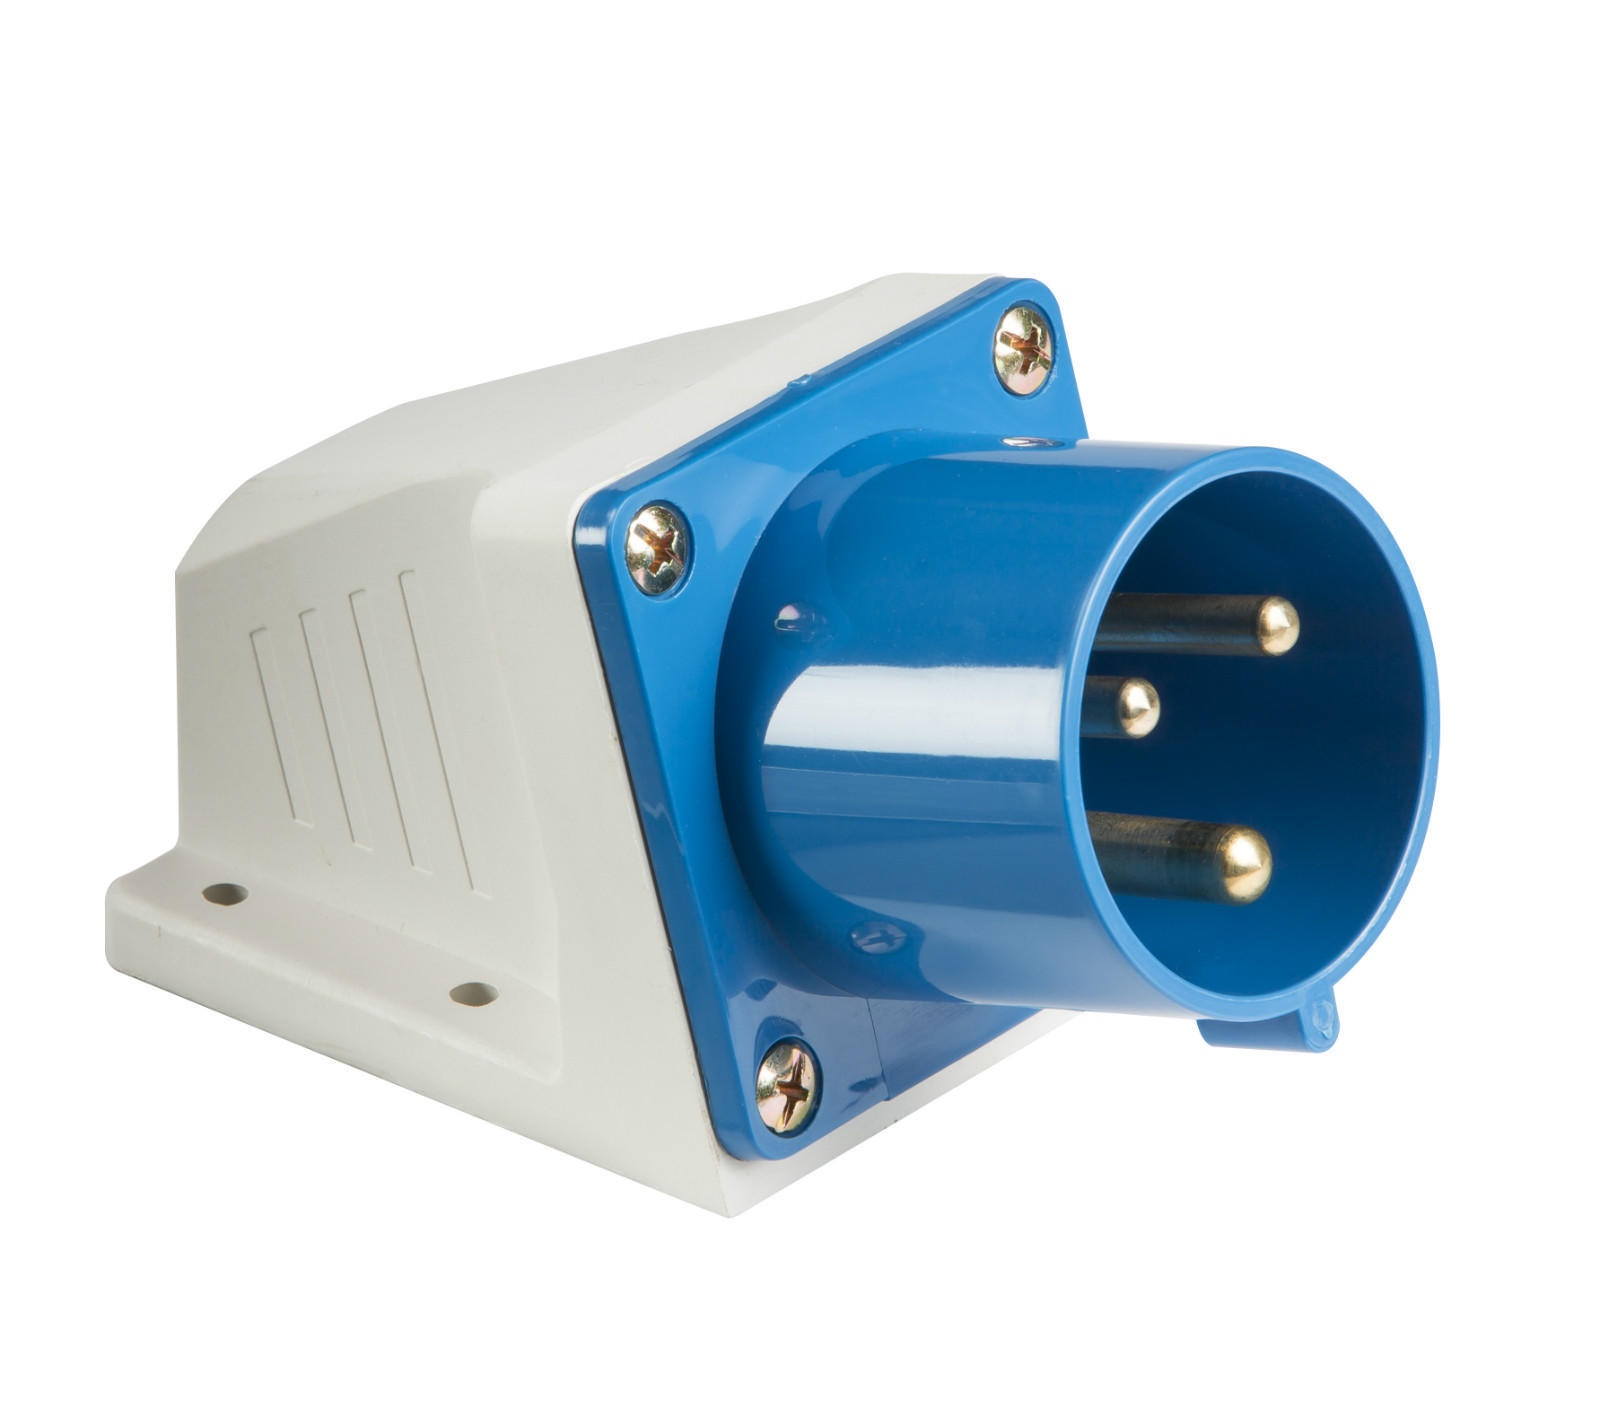 240V IP44 32A Appliance Inlet